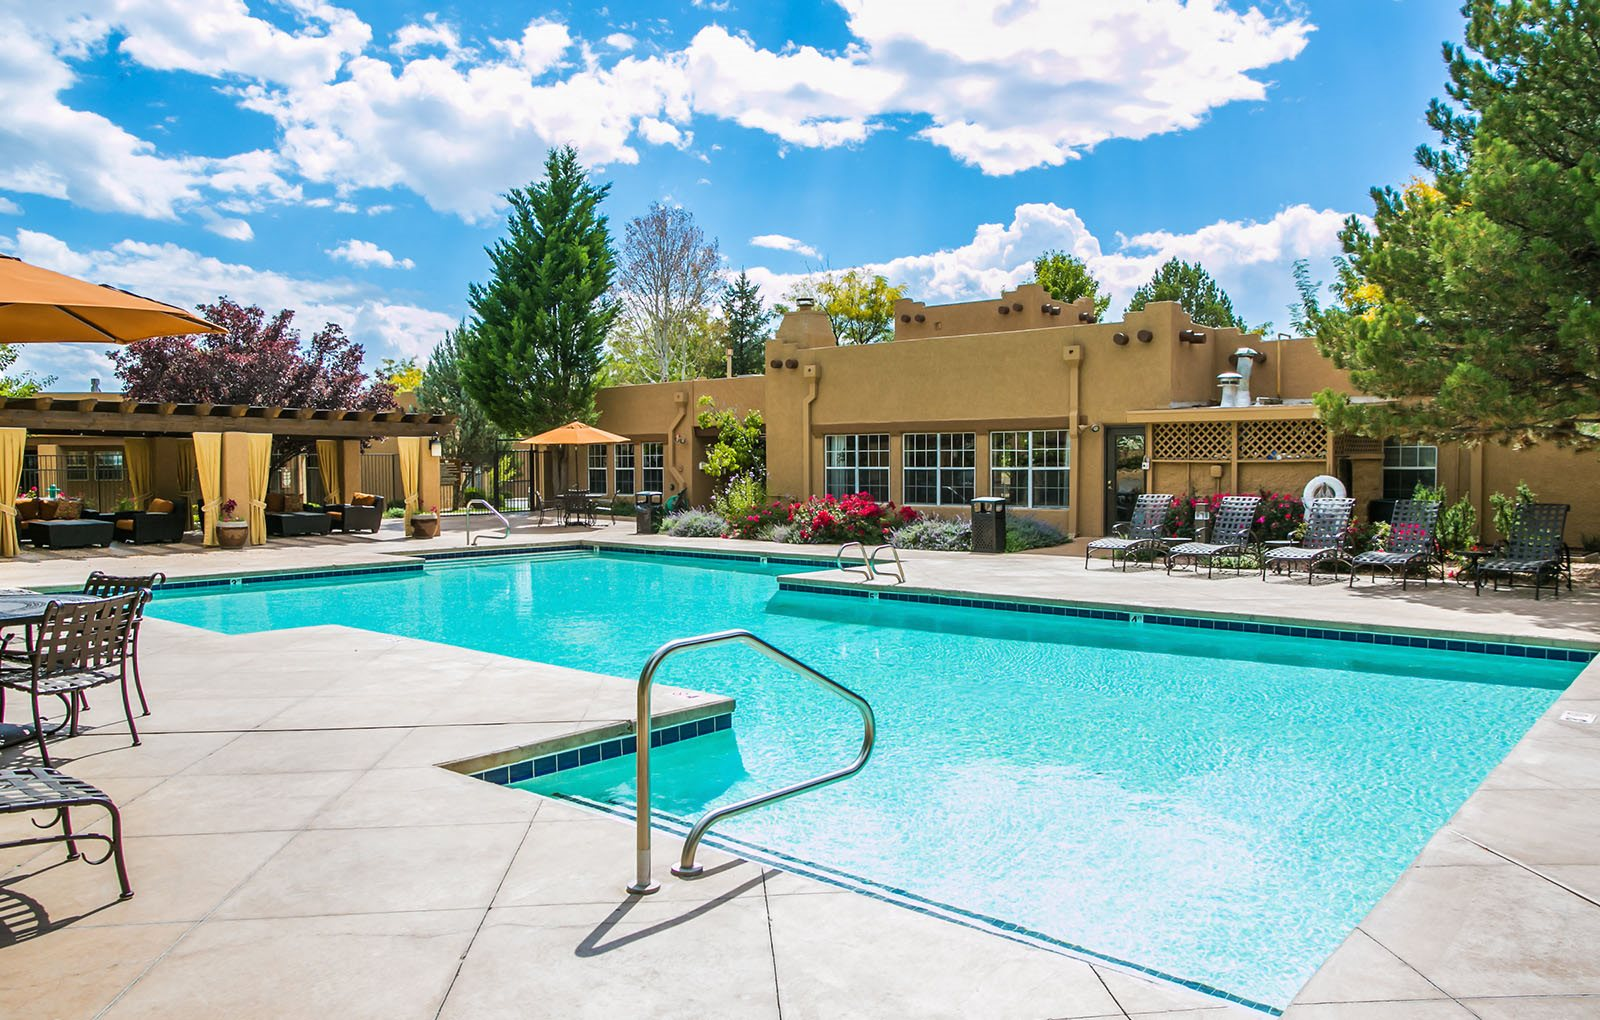 Pool with Sundeck and Lounge at Apartments in Santa Fe